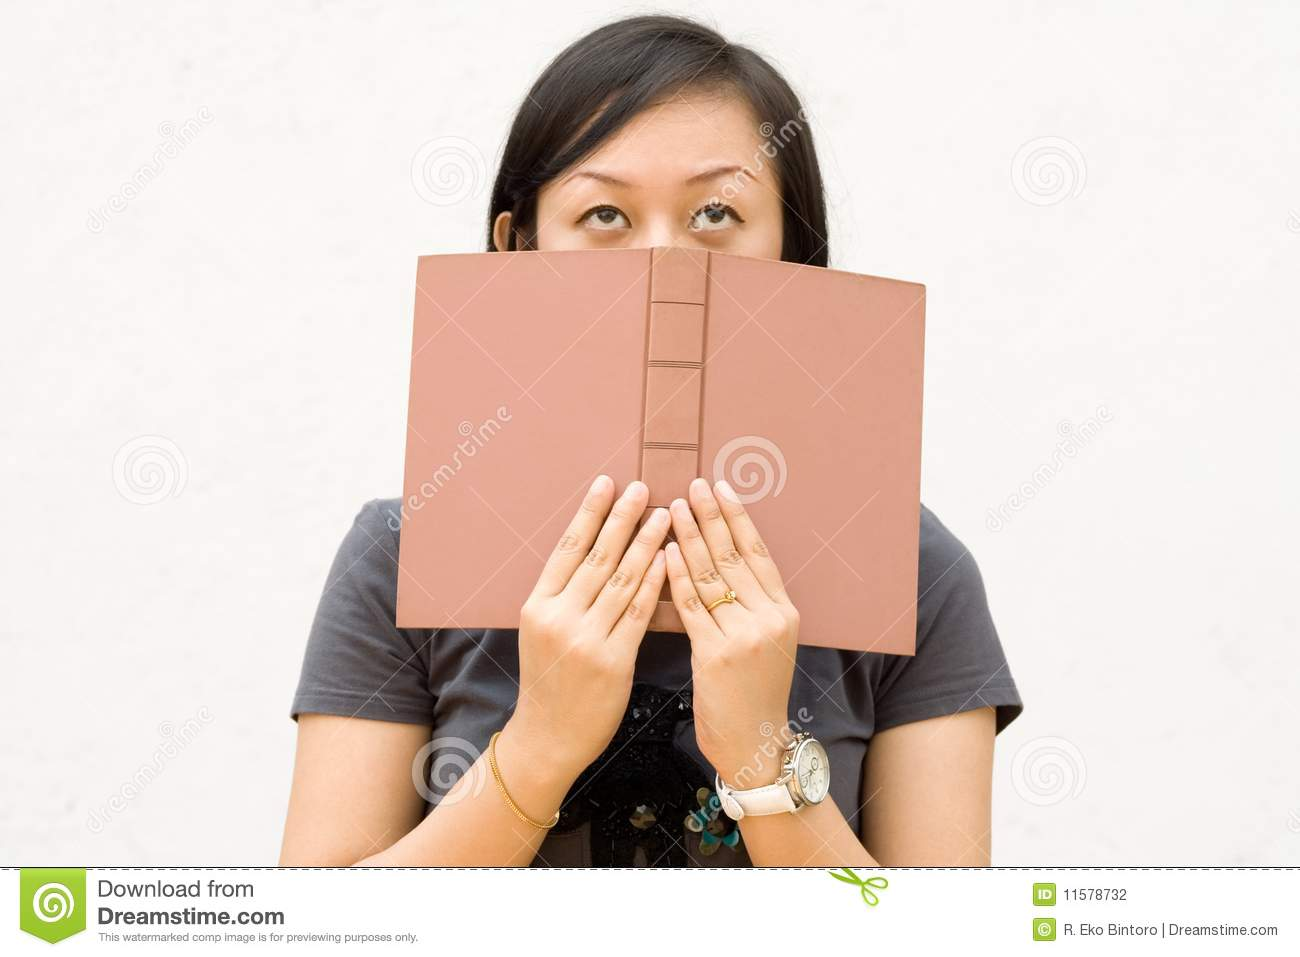 Book Covering Face : College student covering her face with book stock